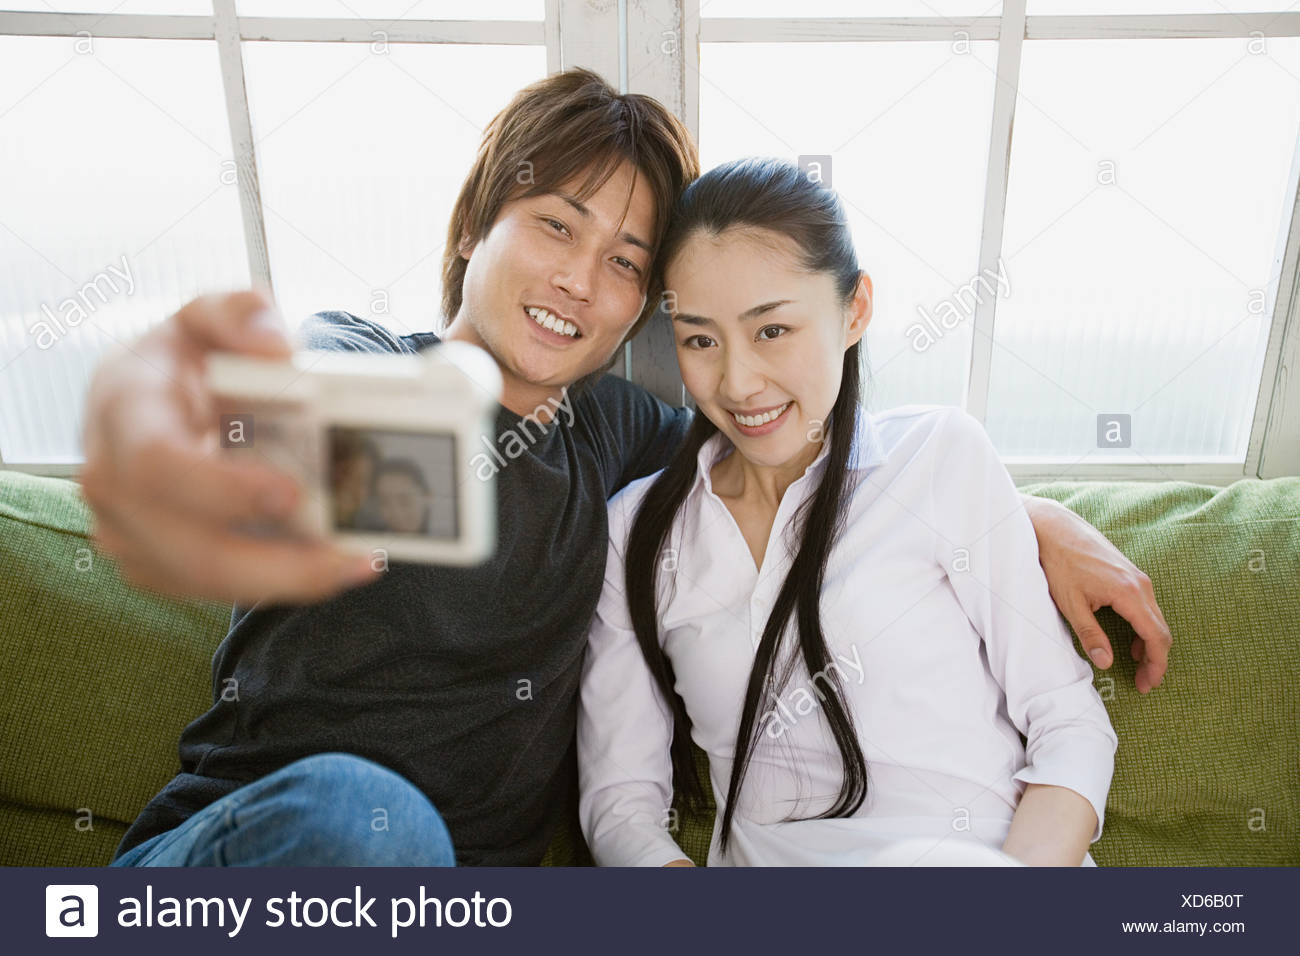 Couple taking a picture of themselves - Stock Image